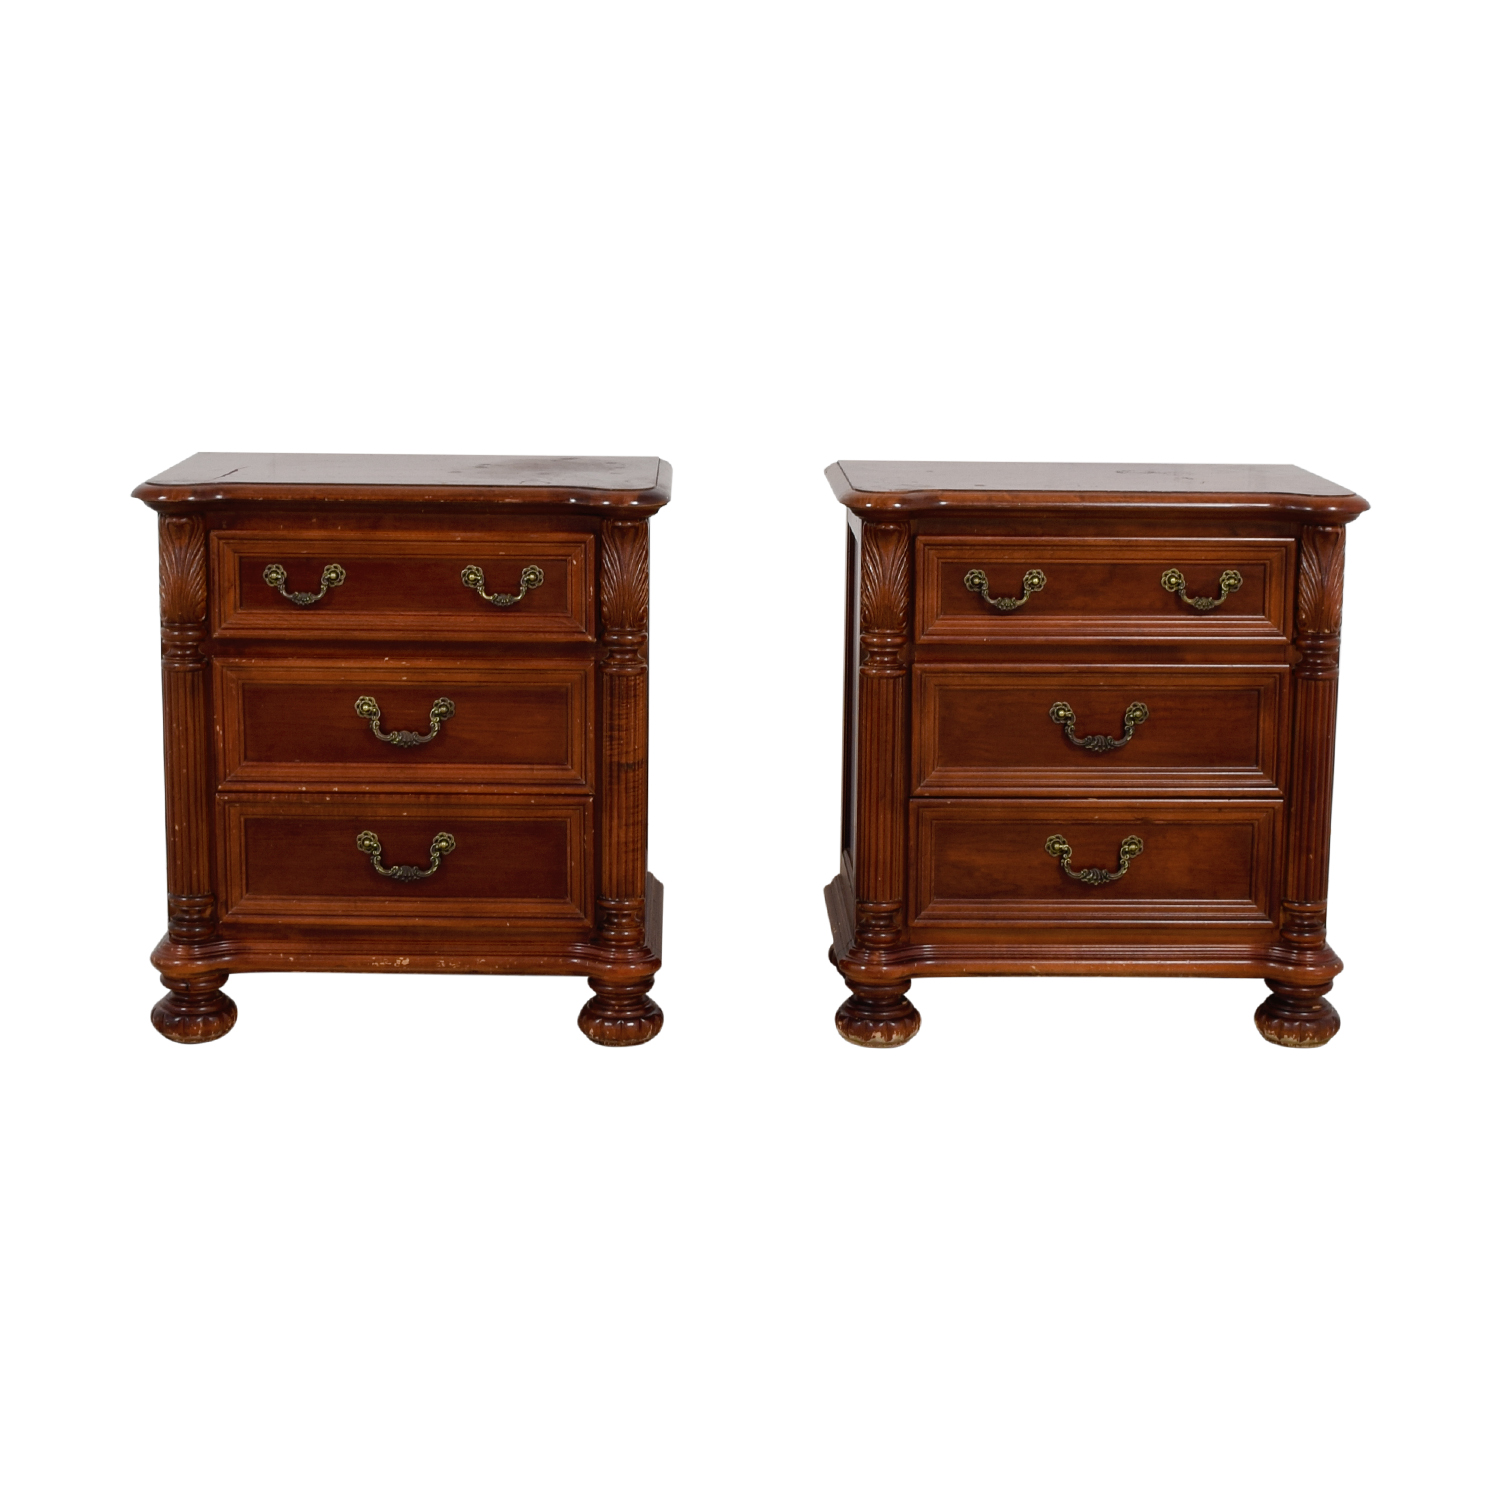 Hooker Furniture Three-Drawer Mahogany Night Stands / Tables